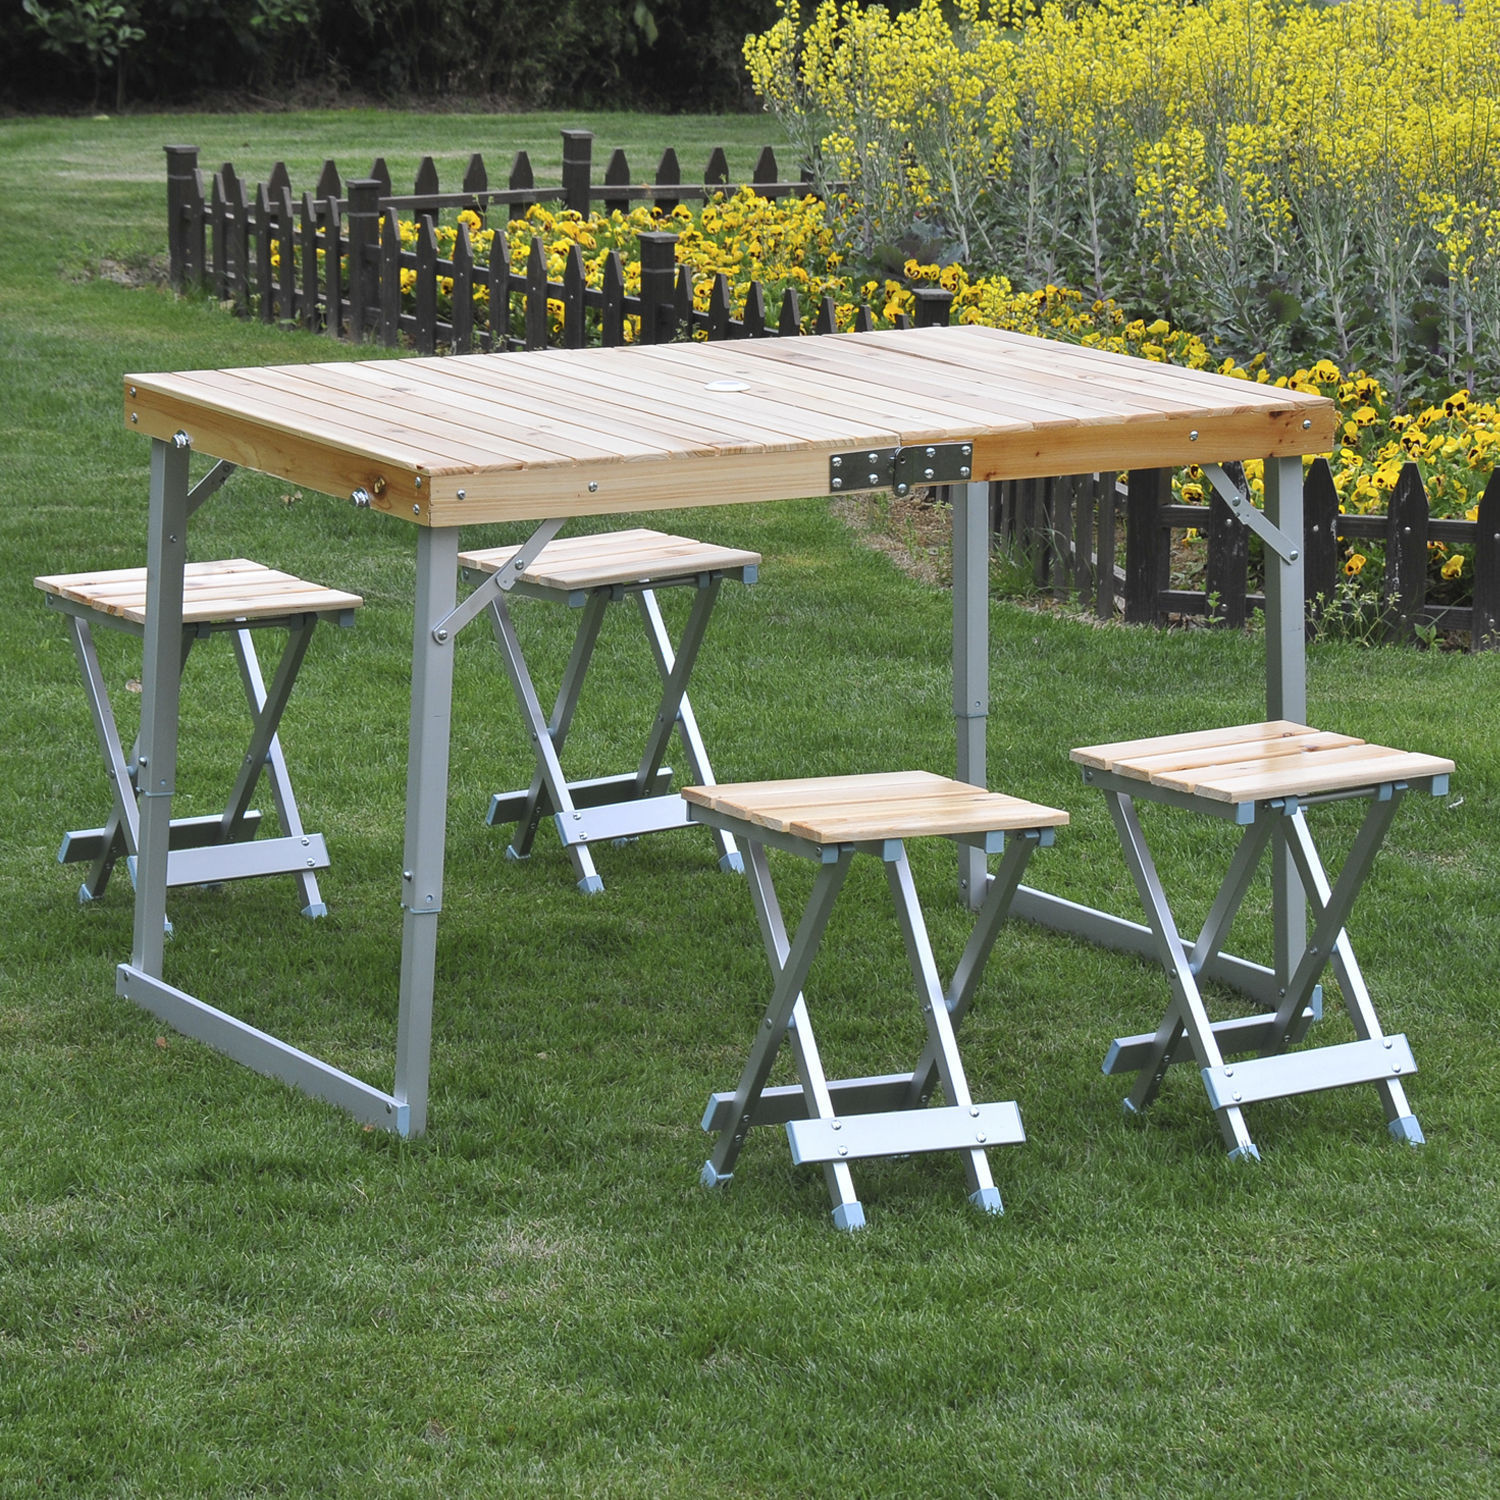 Groovy Details About Portable Folding Picnic Table 4 Seats Chairs Camping Park Outdoor Wood Aluminum Download Free Architecture Designs Scobabritishbridgeorg